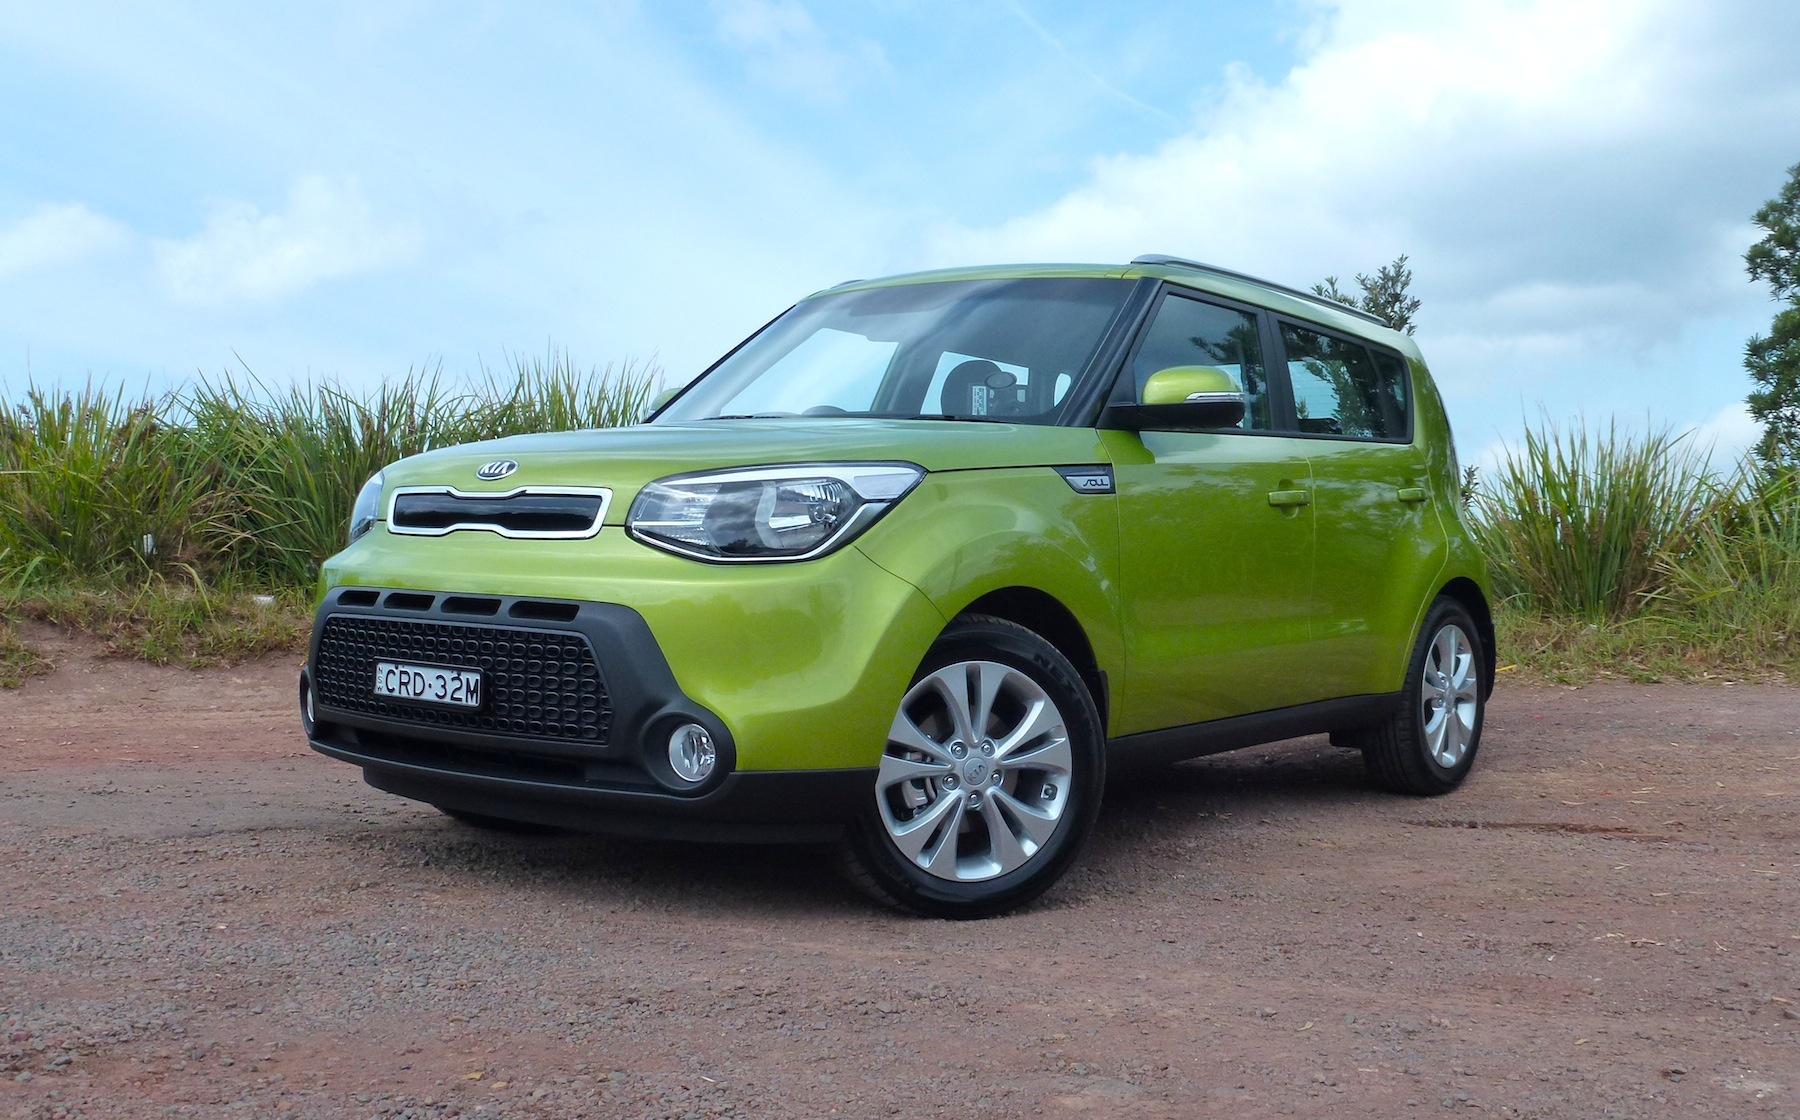 kia soul expected to spawn new compact suv photos 1 of 4. Black Bedroom Furniture Sets. Home Design Ideas